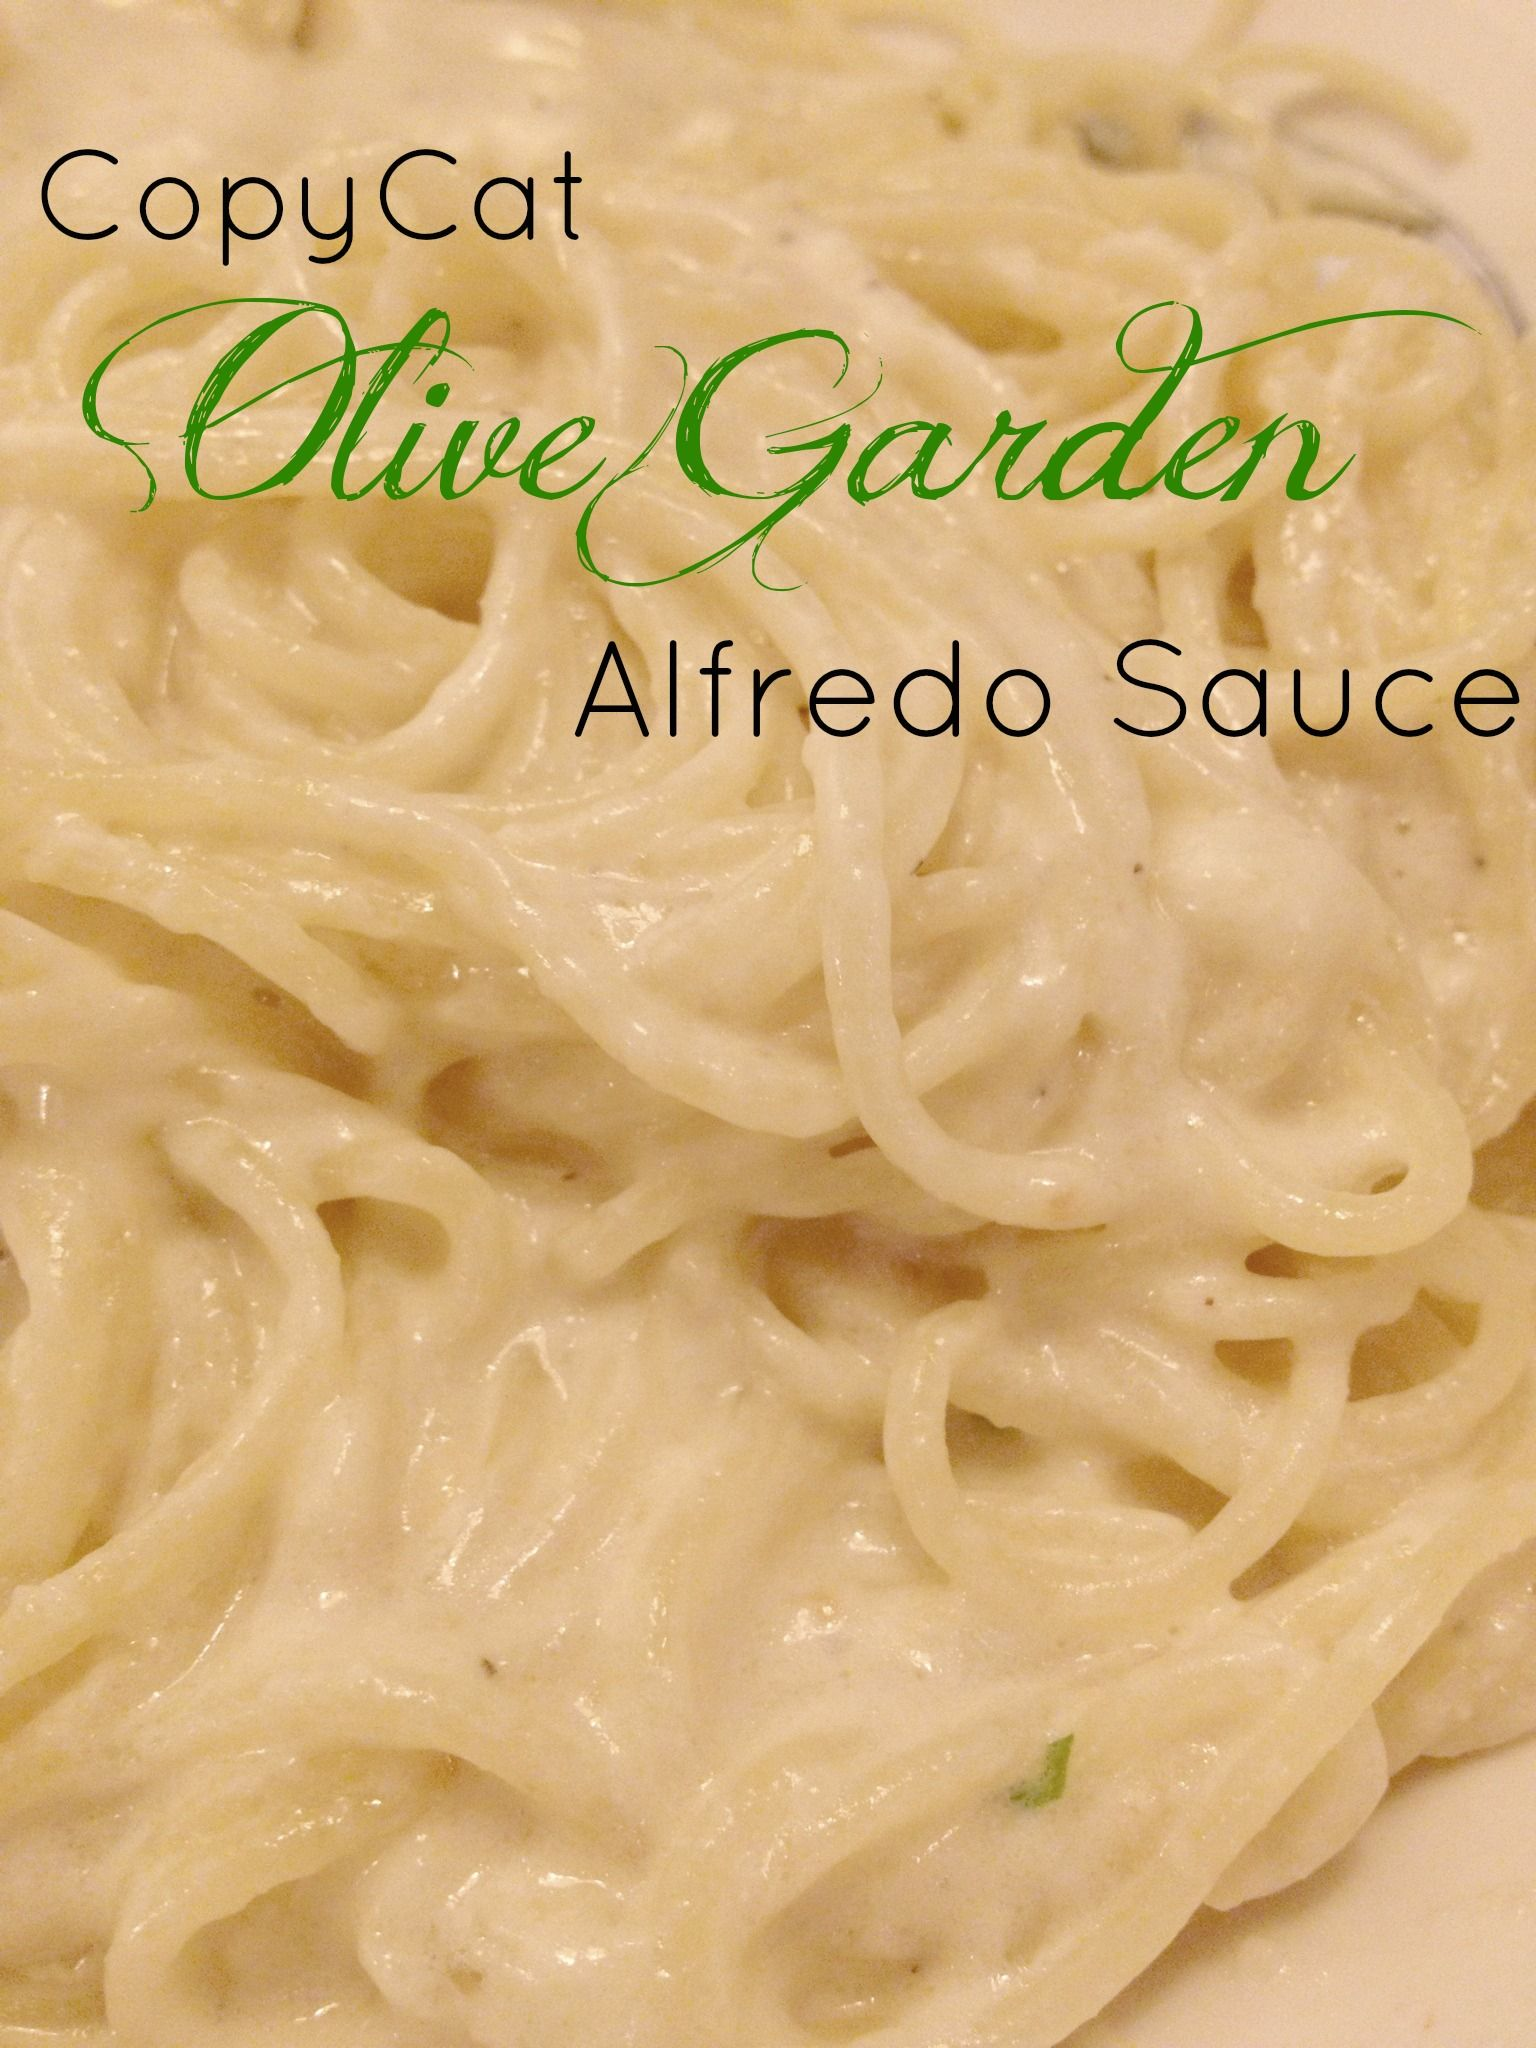 Copycat Olive Garden Alfredo Sauce Recipe I Changed It